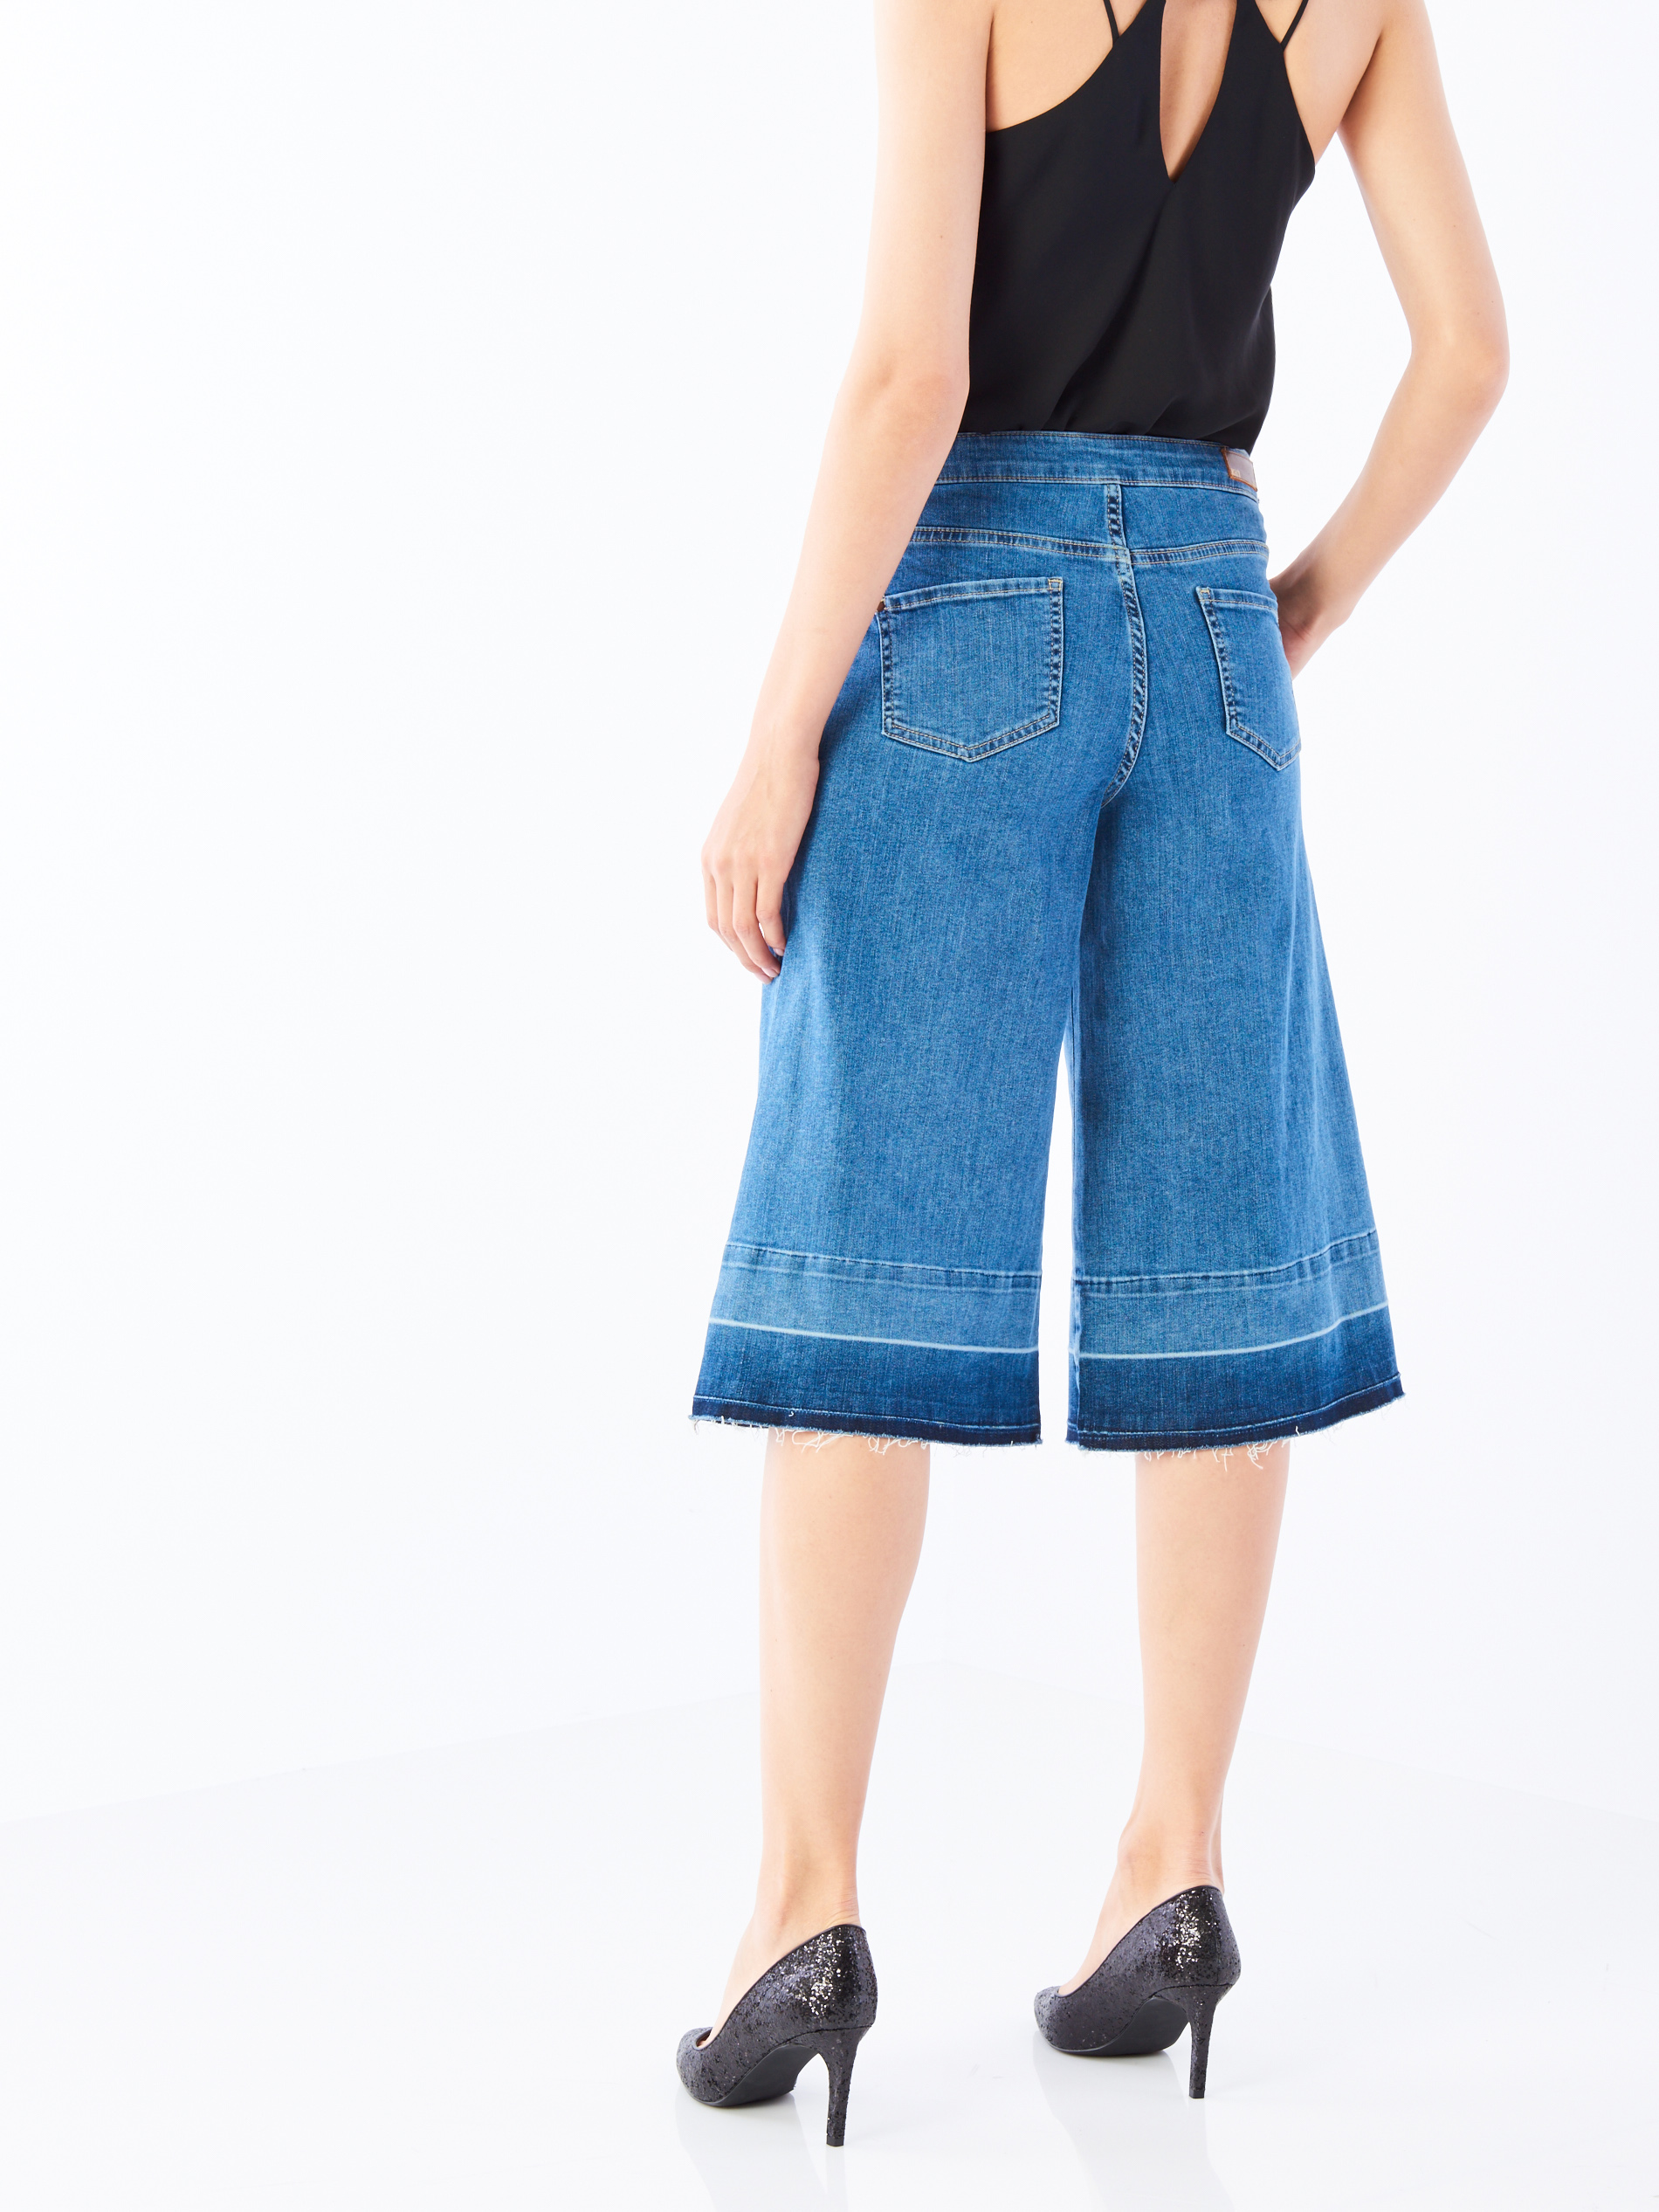 Rövid fazon, <a href='http://www.mohito.com/hu/hu/collection/all/trousers-jeans/py219-55j/culottes-jeans' target='_blank'>Mohito</a></p>